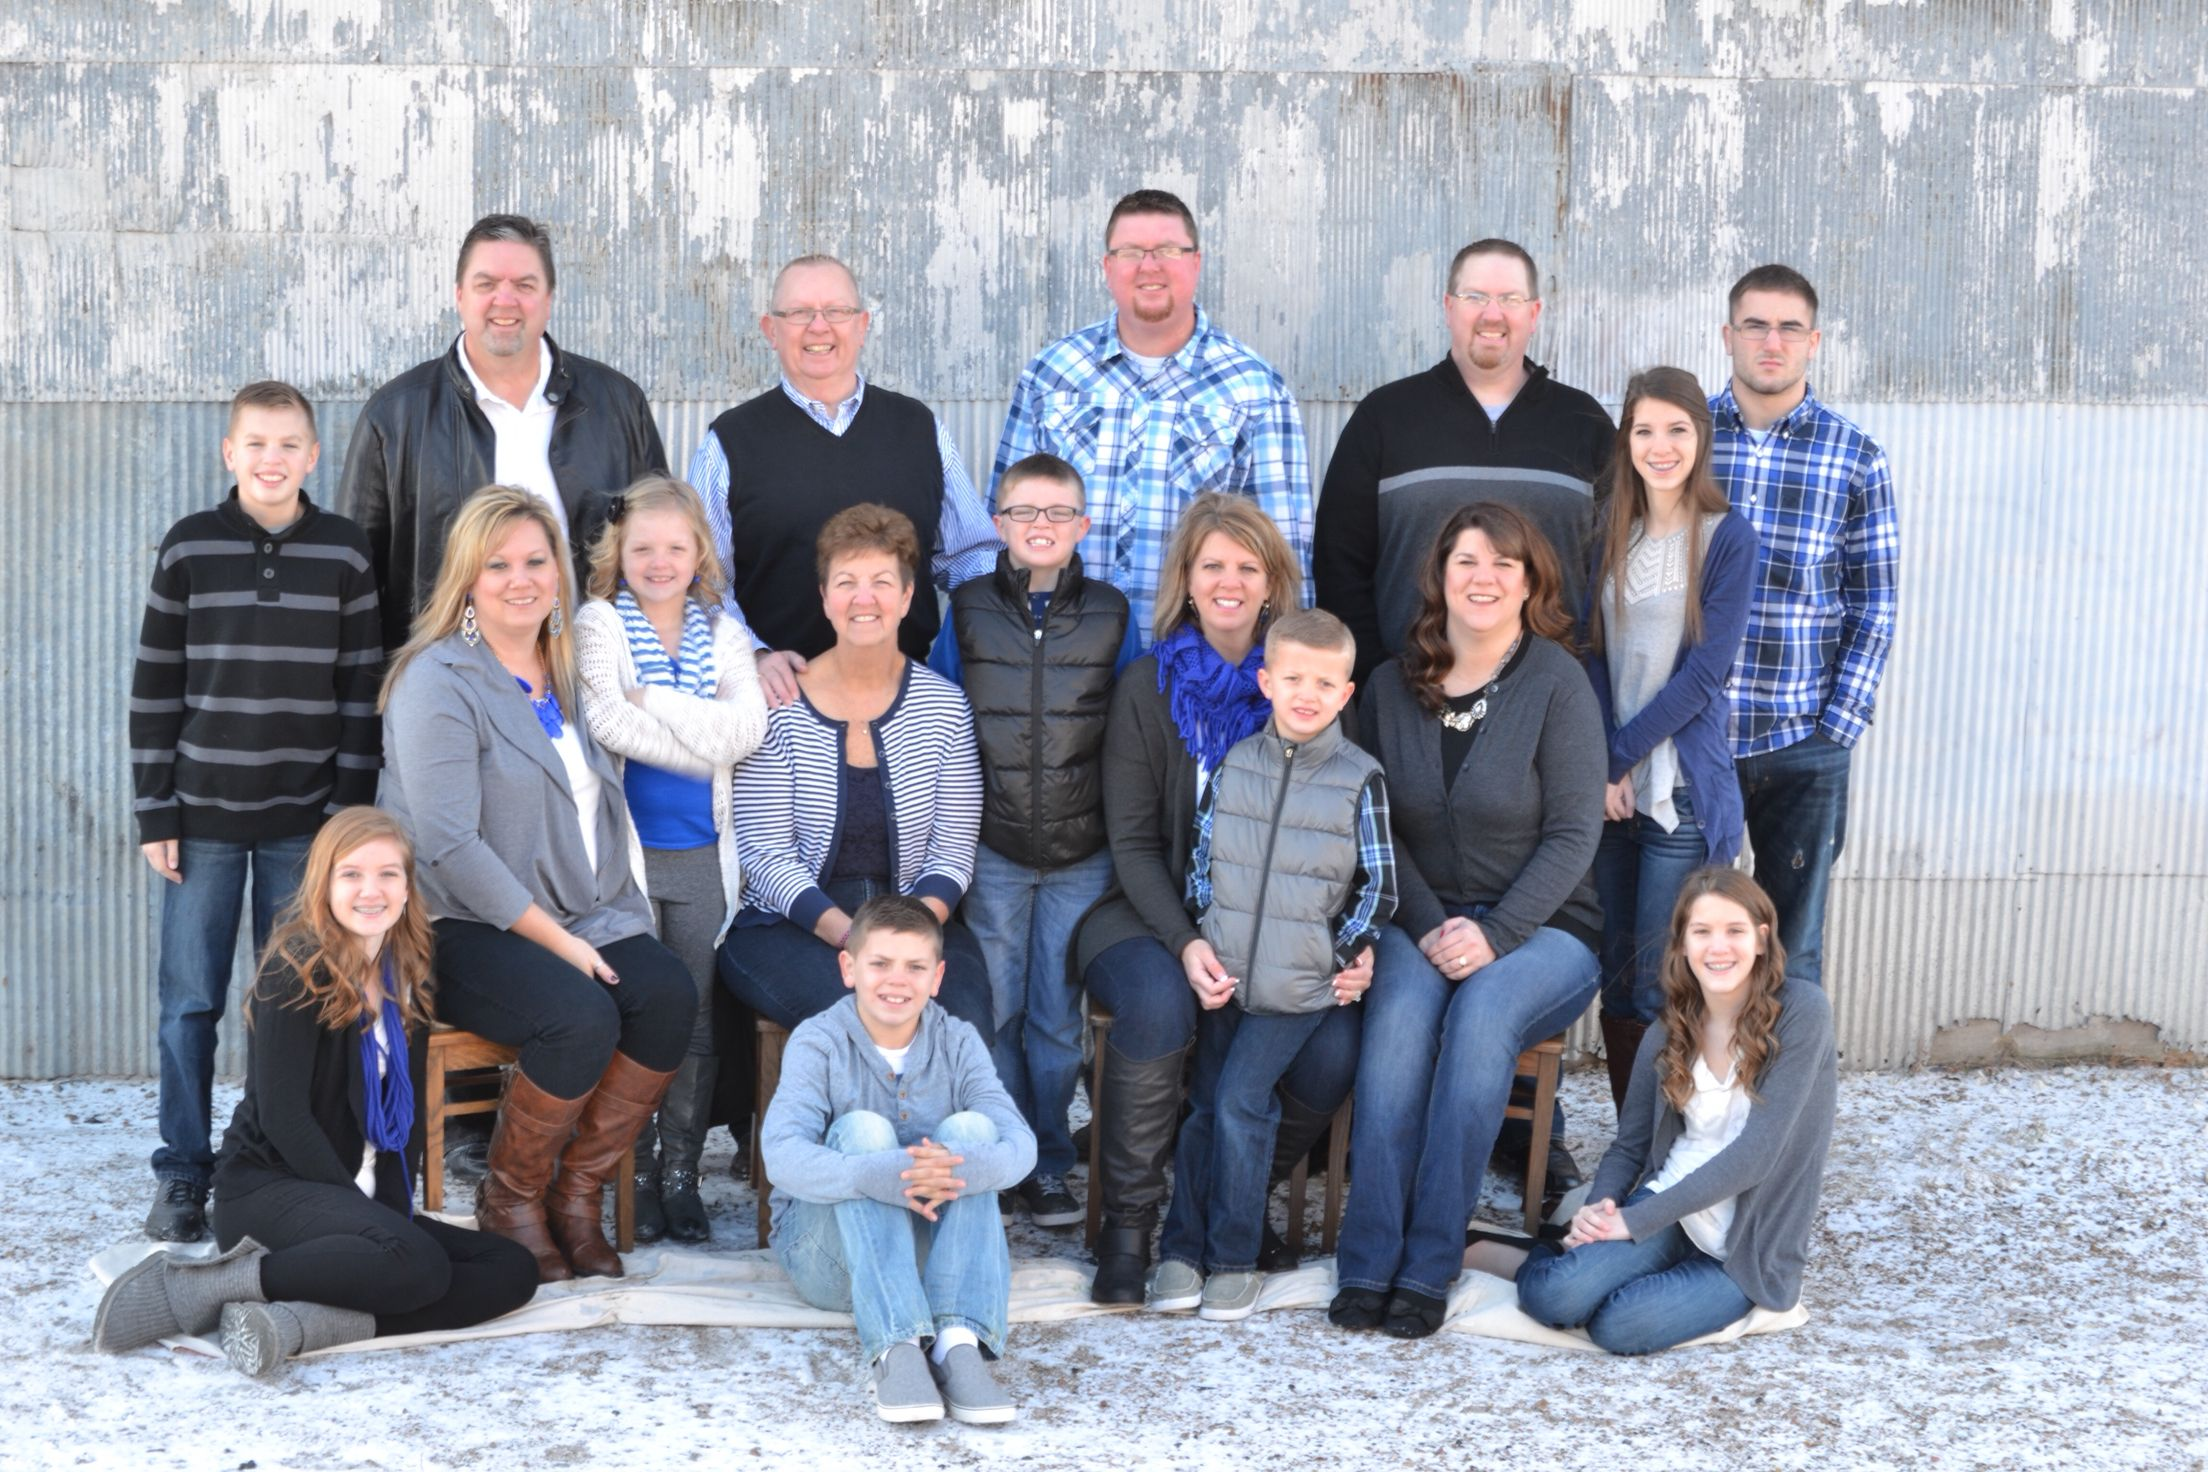 Family pose color scheme blue gray navy black and white